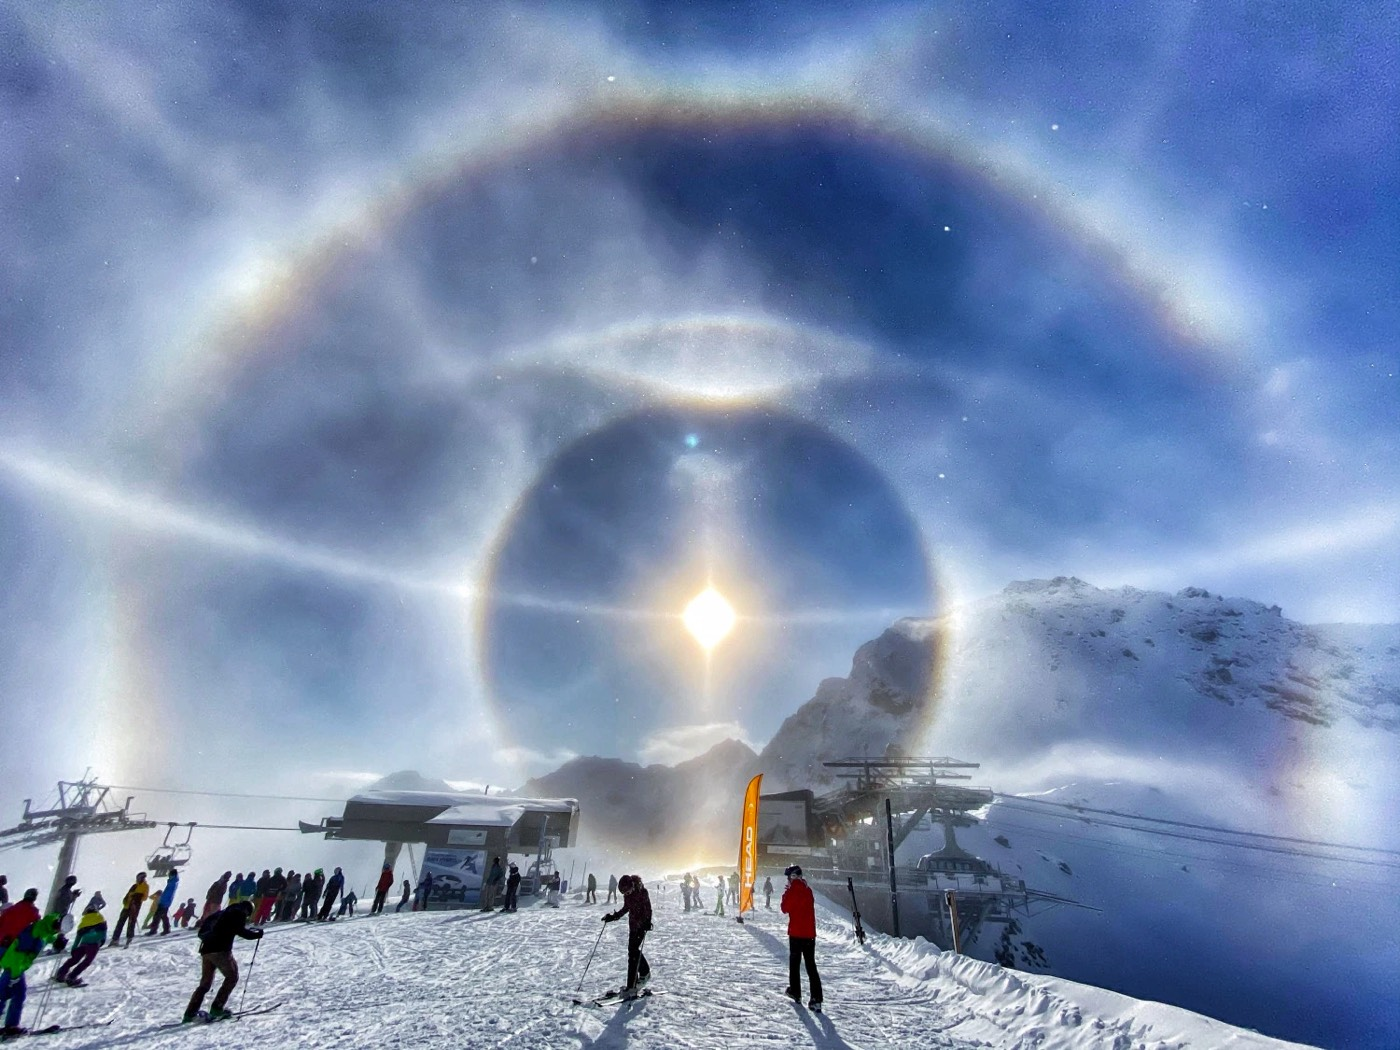 Incredible Display of Ice Crystal Halos Around the Sun in the Swiss Alps